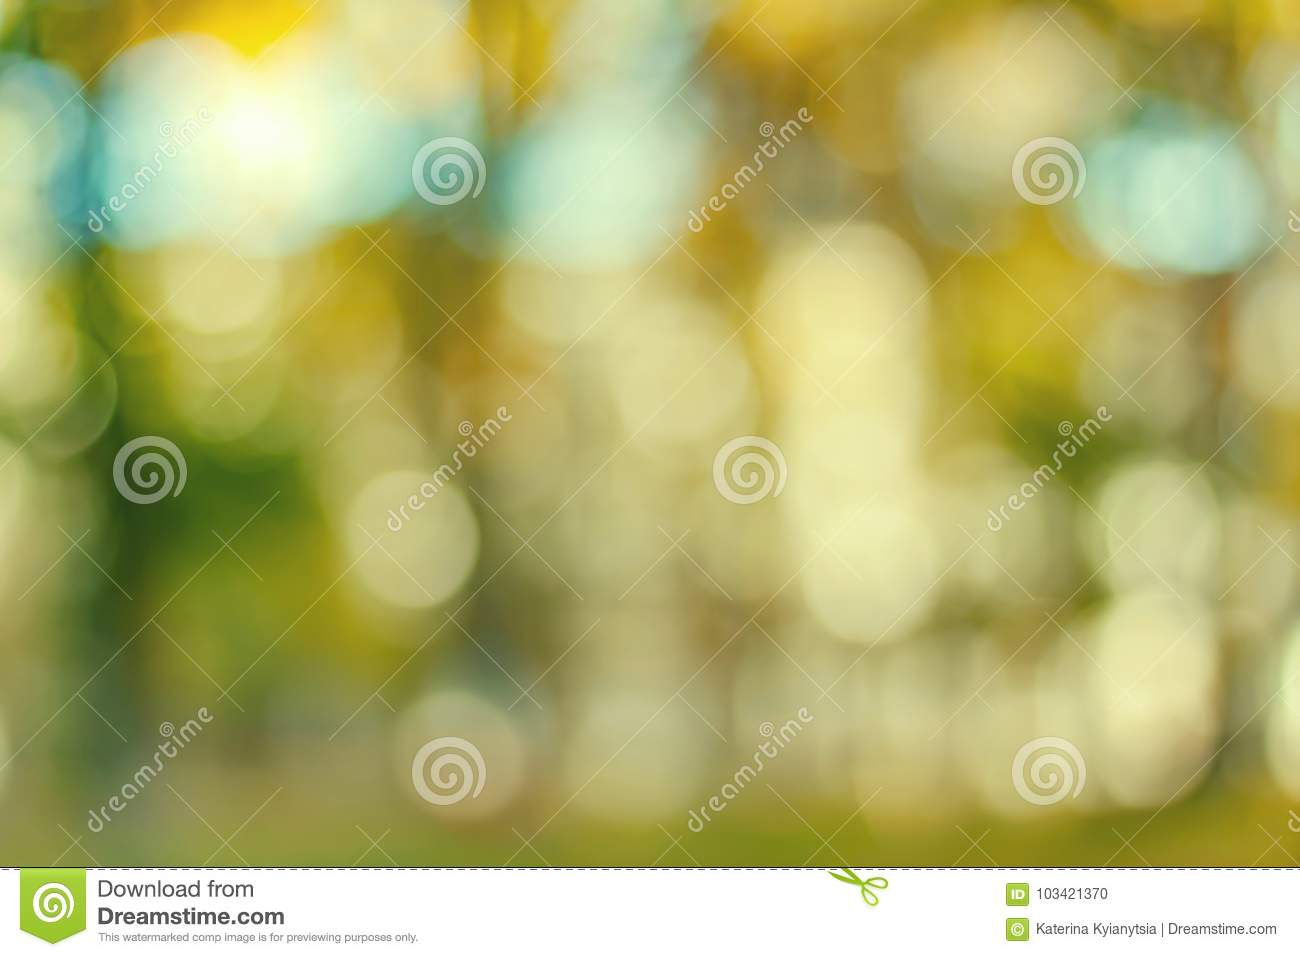 Blurry nature wallpaper. stock photo. Image of bright ...